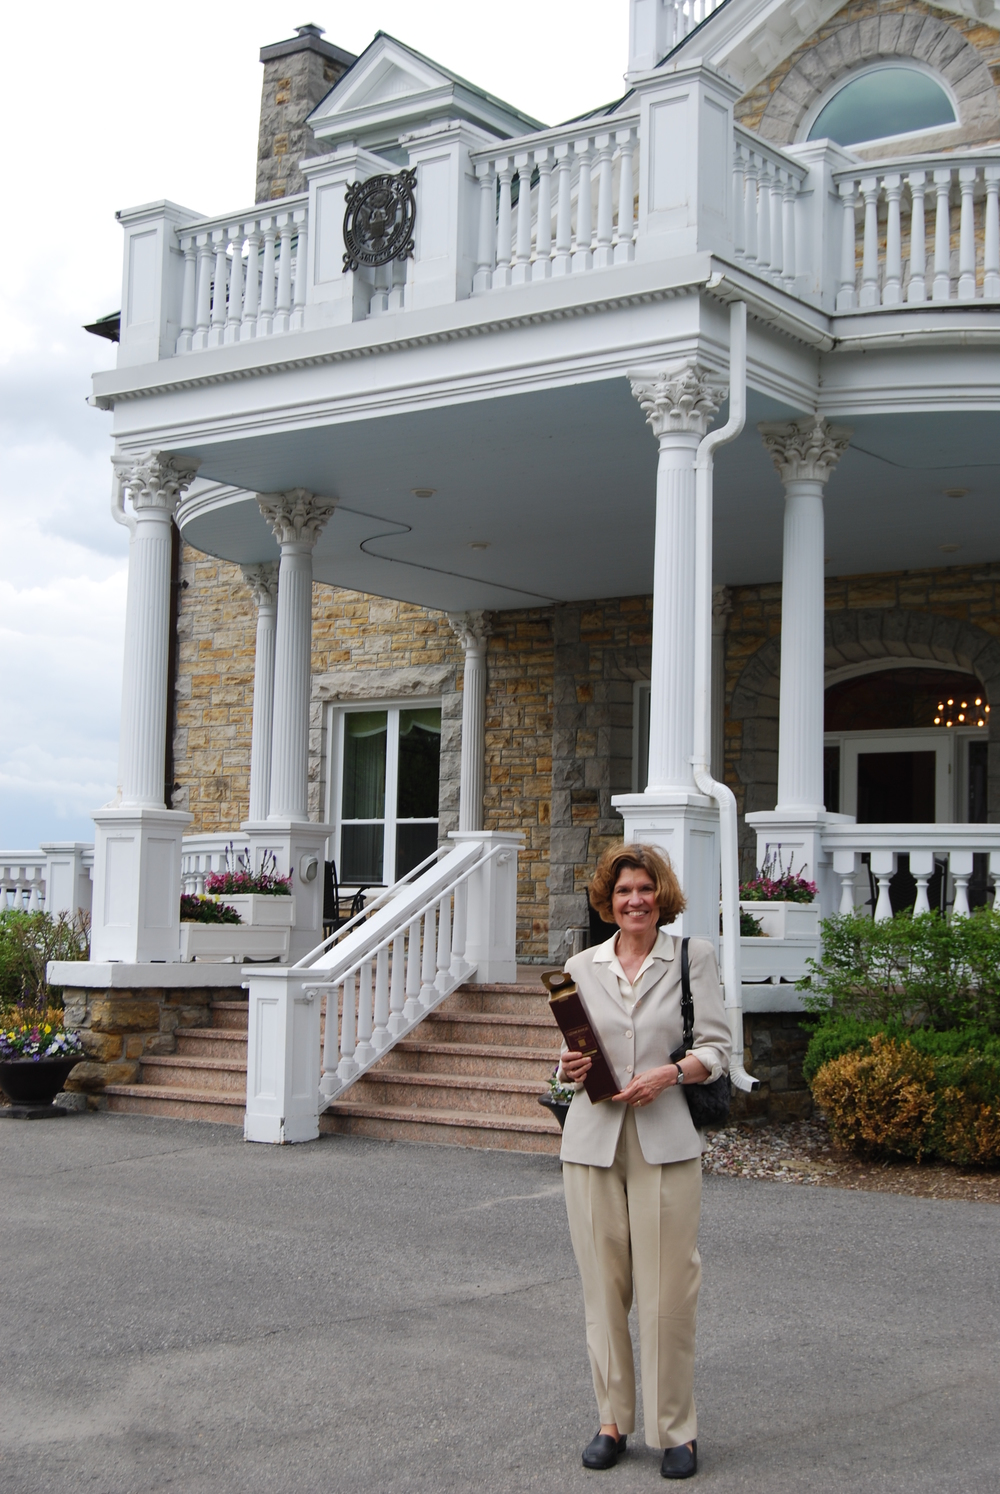 Lynne Olson outside the Residence of the American Ambassador - I